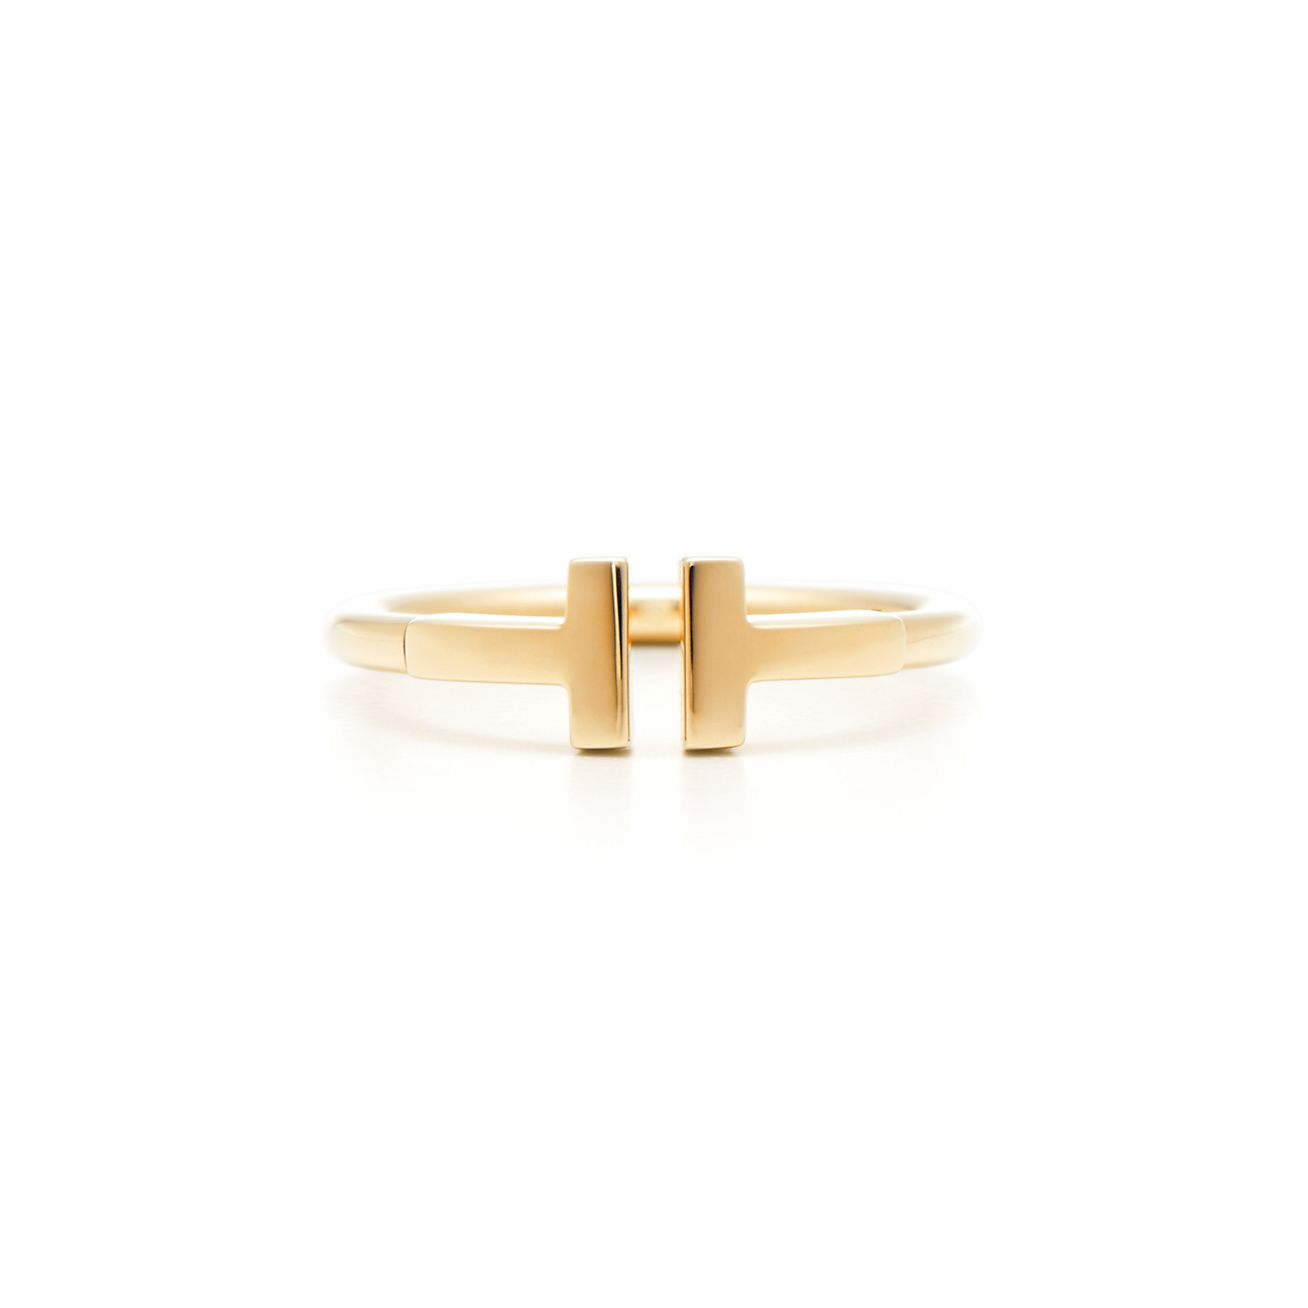 Tiffany T square ring in 18k rose gold - Size 4 1/2 Tiffany & Co. rBRop